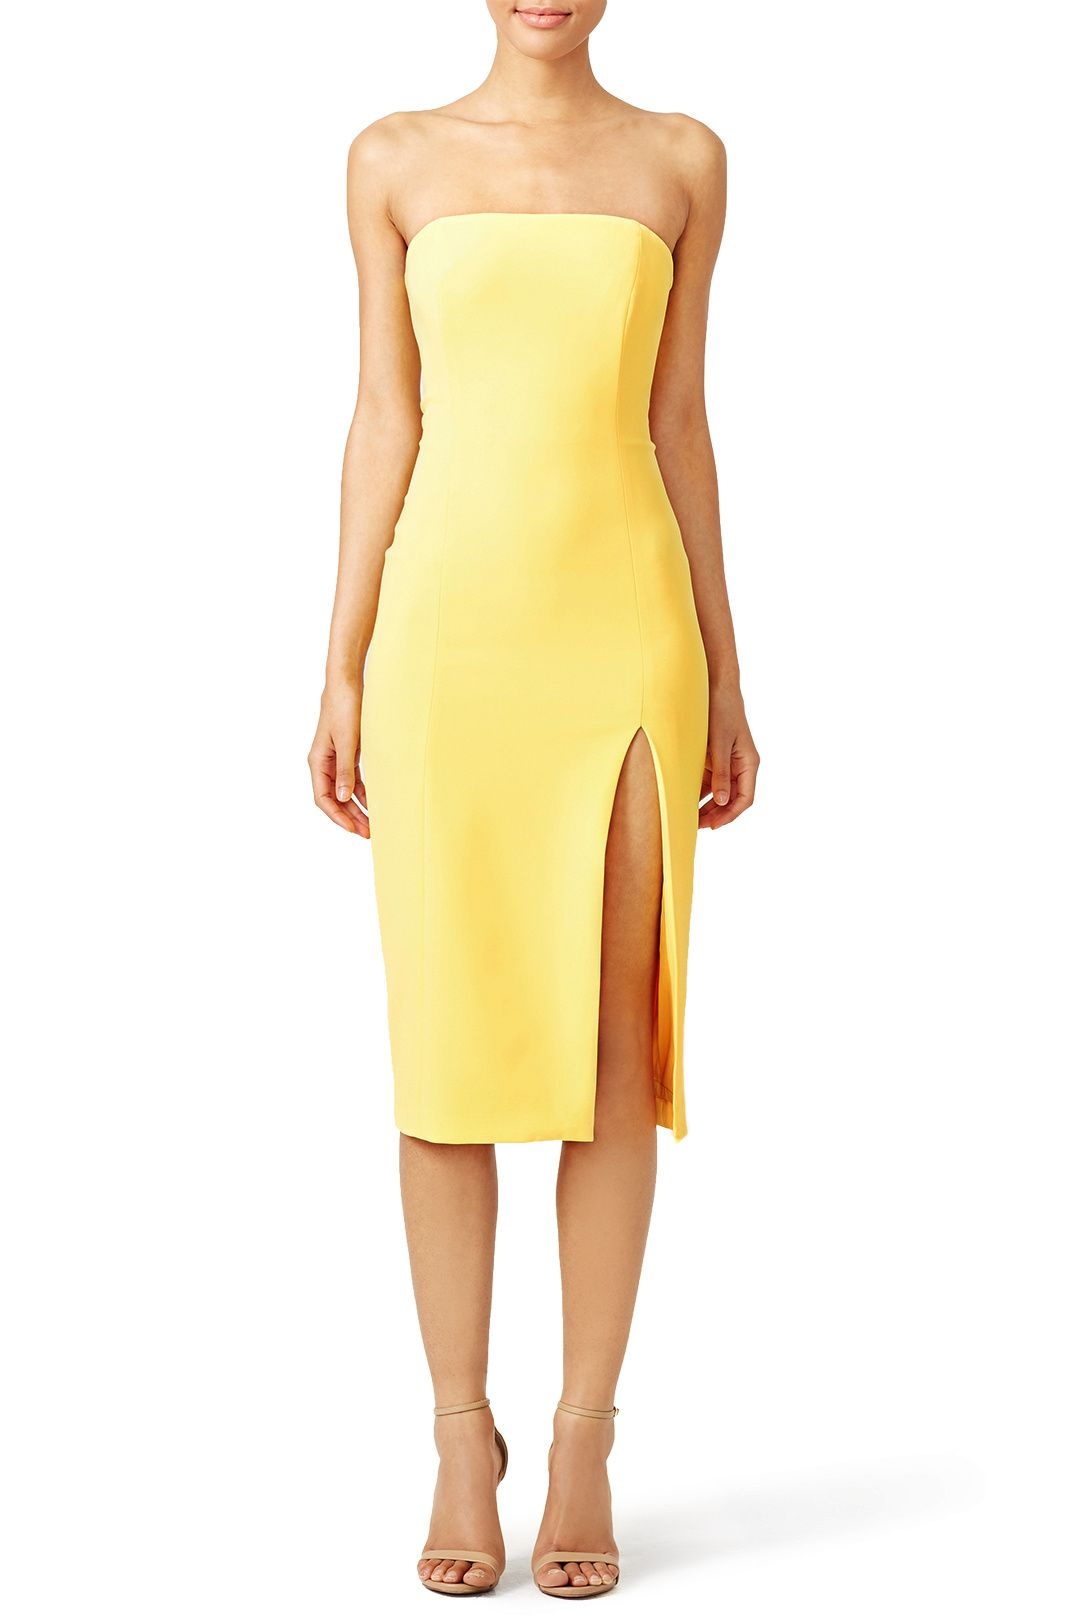 Sunflower Thompson Dress | The Wedding Guide: